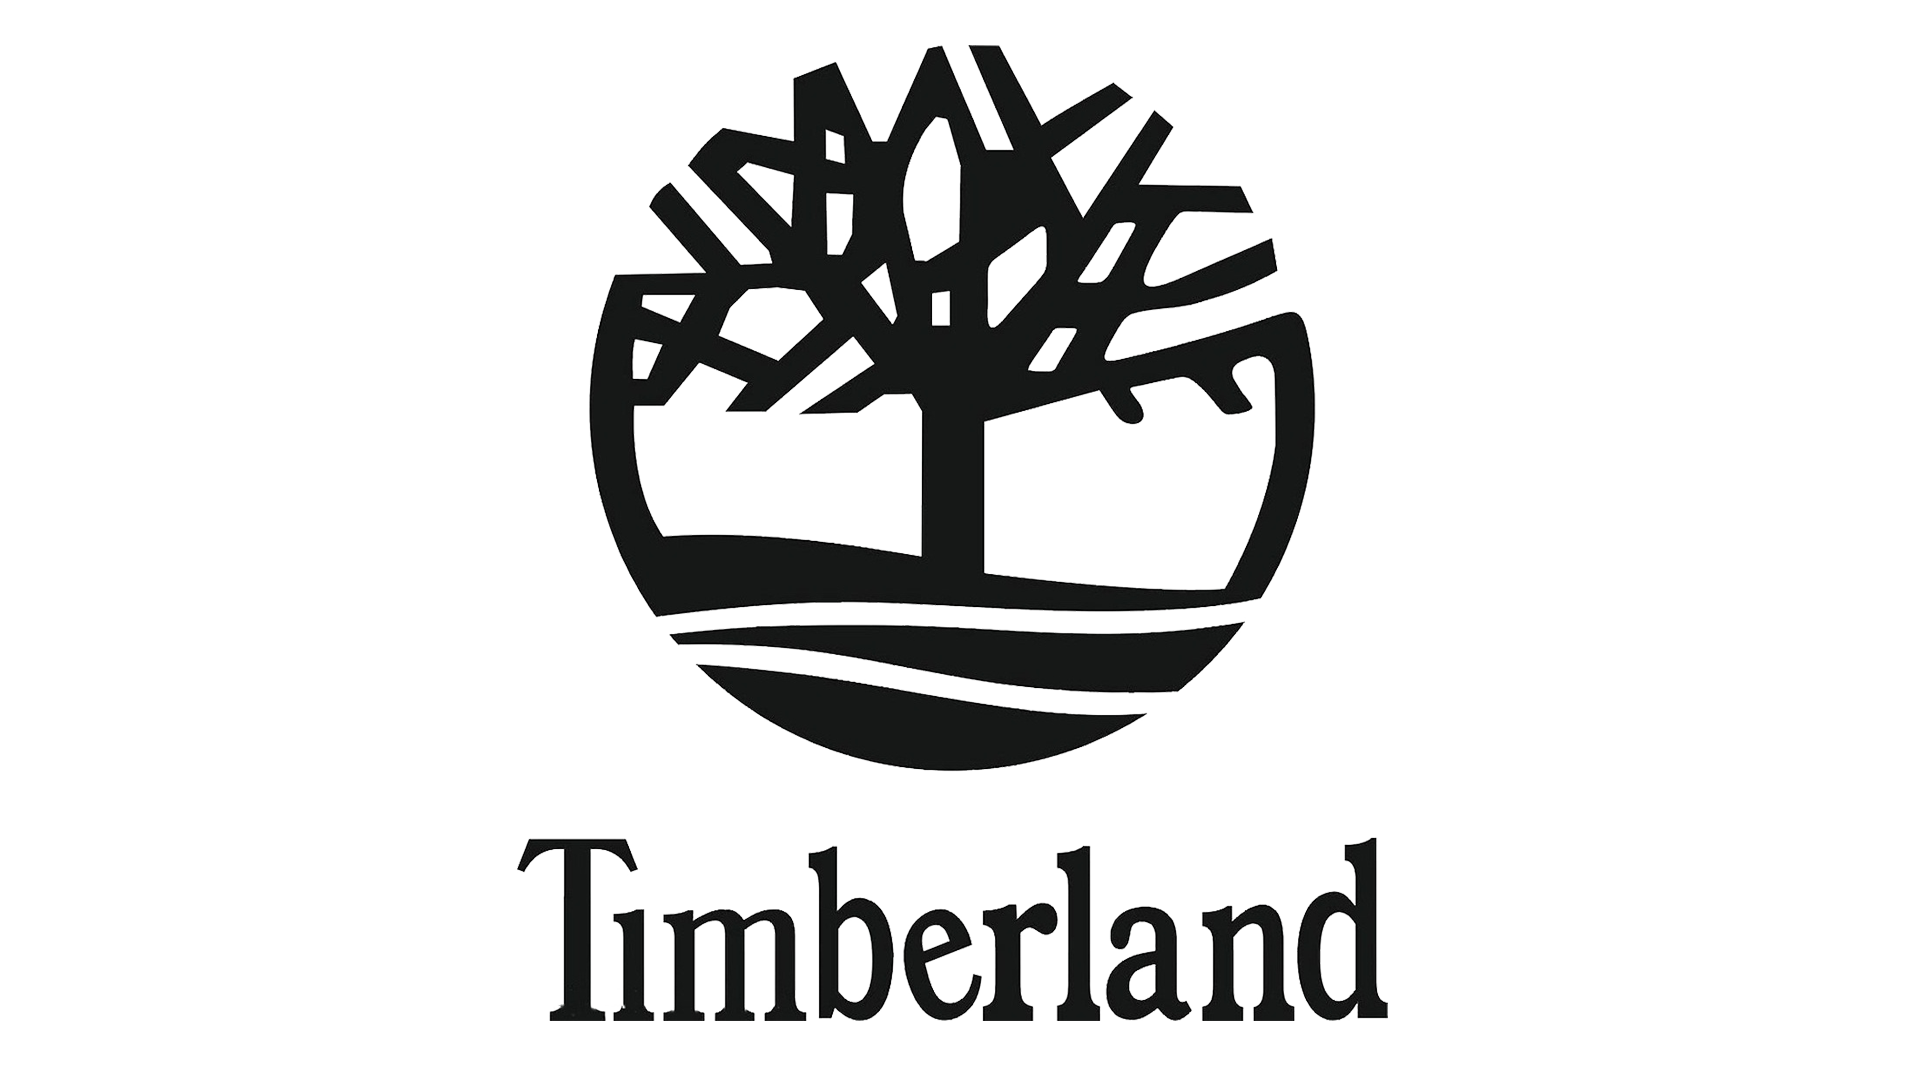 Timbs png symbol. Timberland tree meaning image